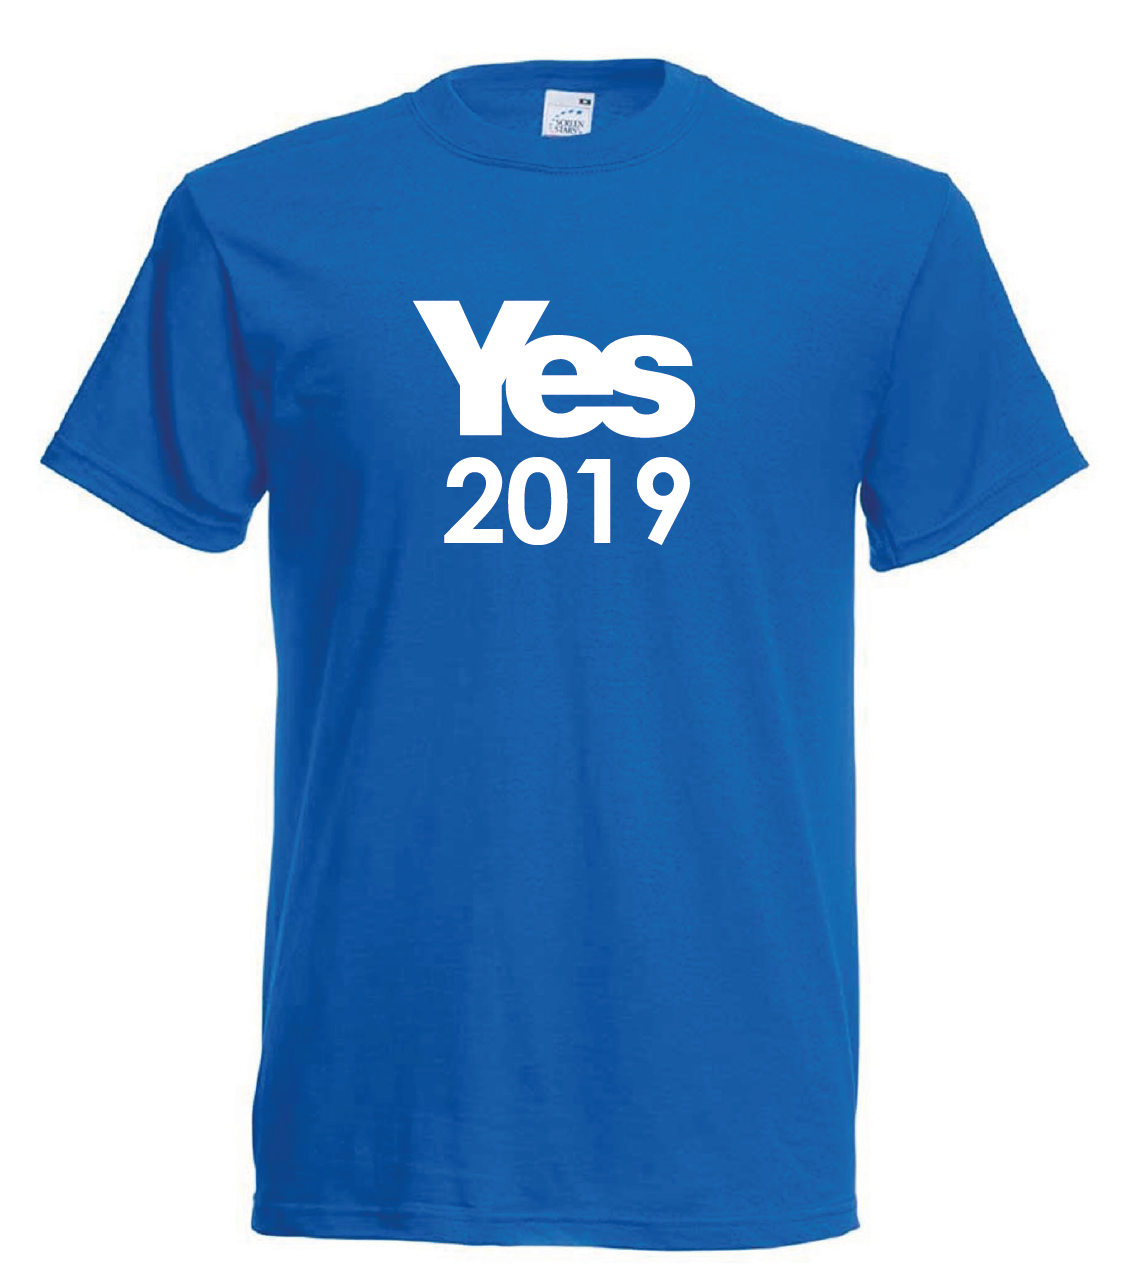 Yes 2019 T-Shirt